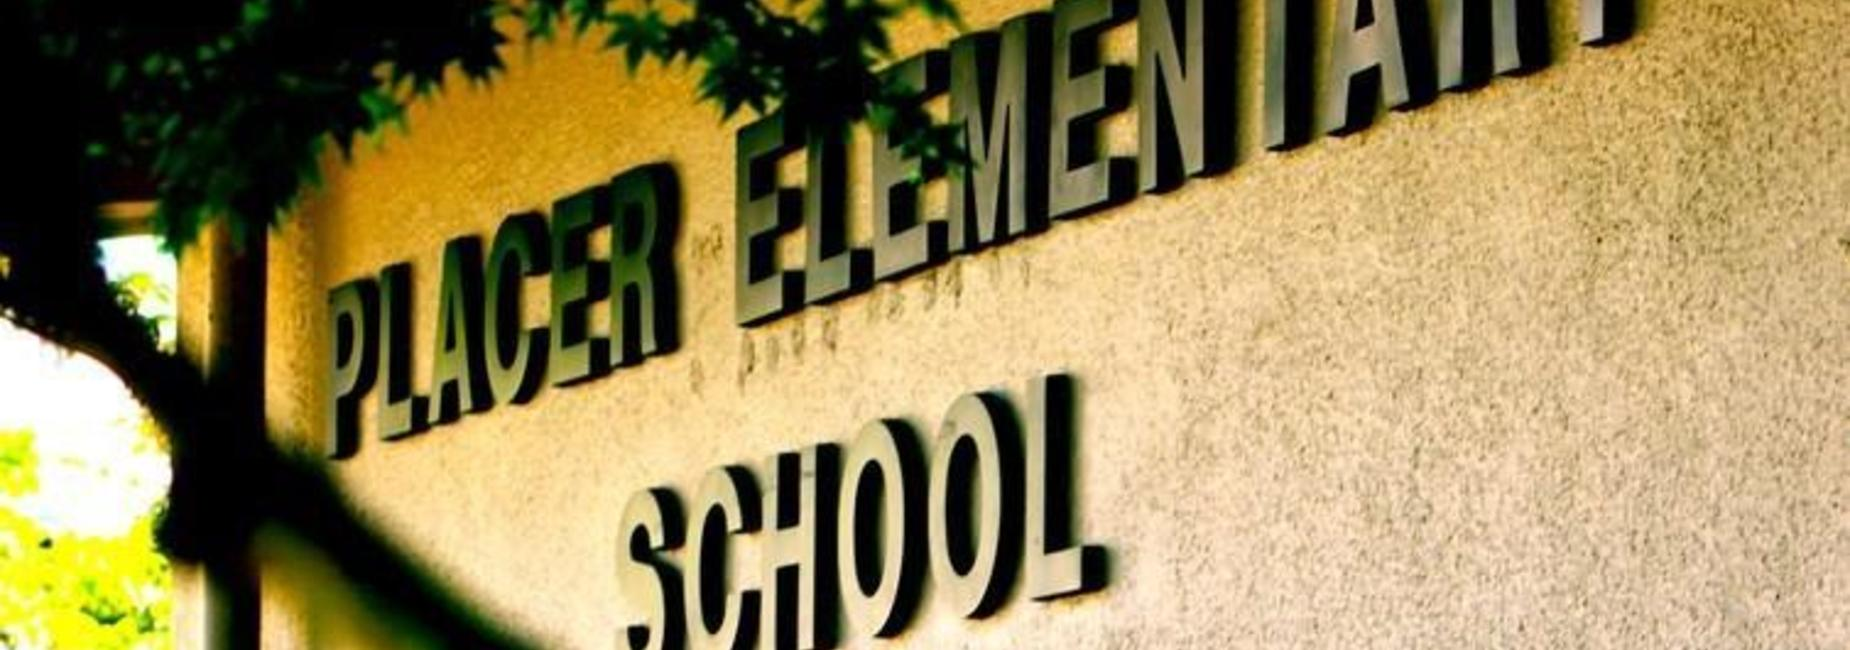 Placer Elementary school sign